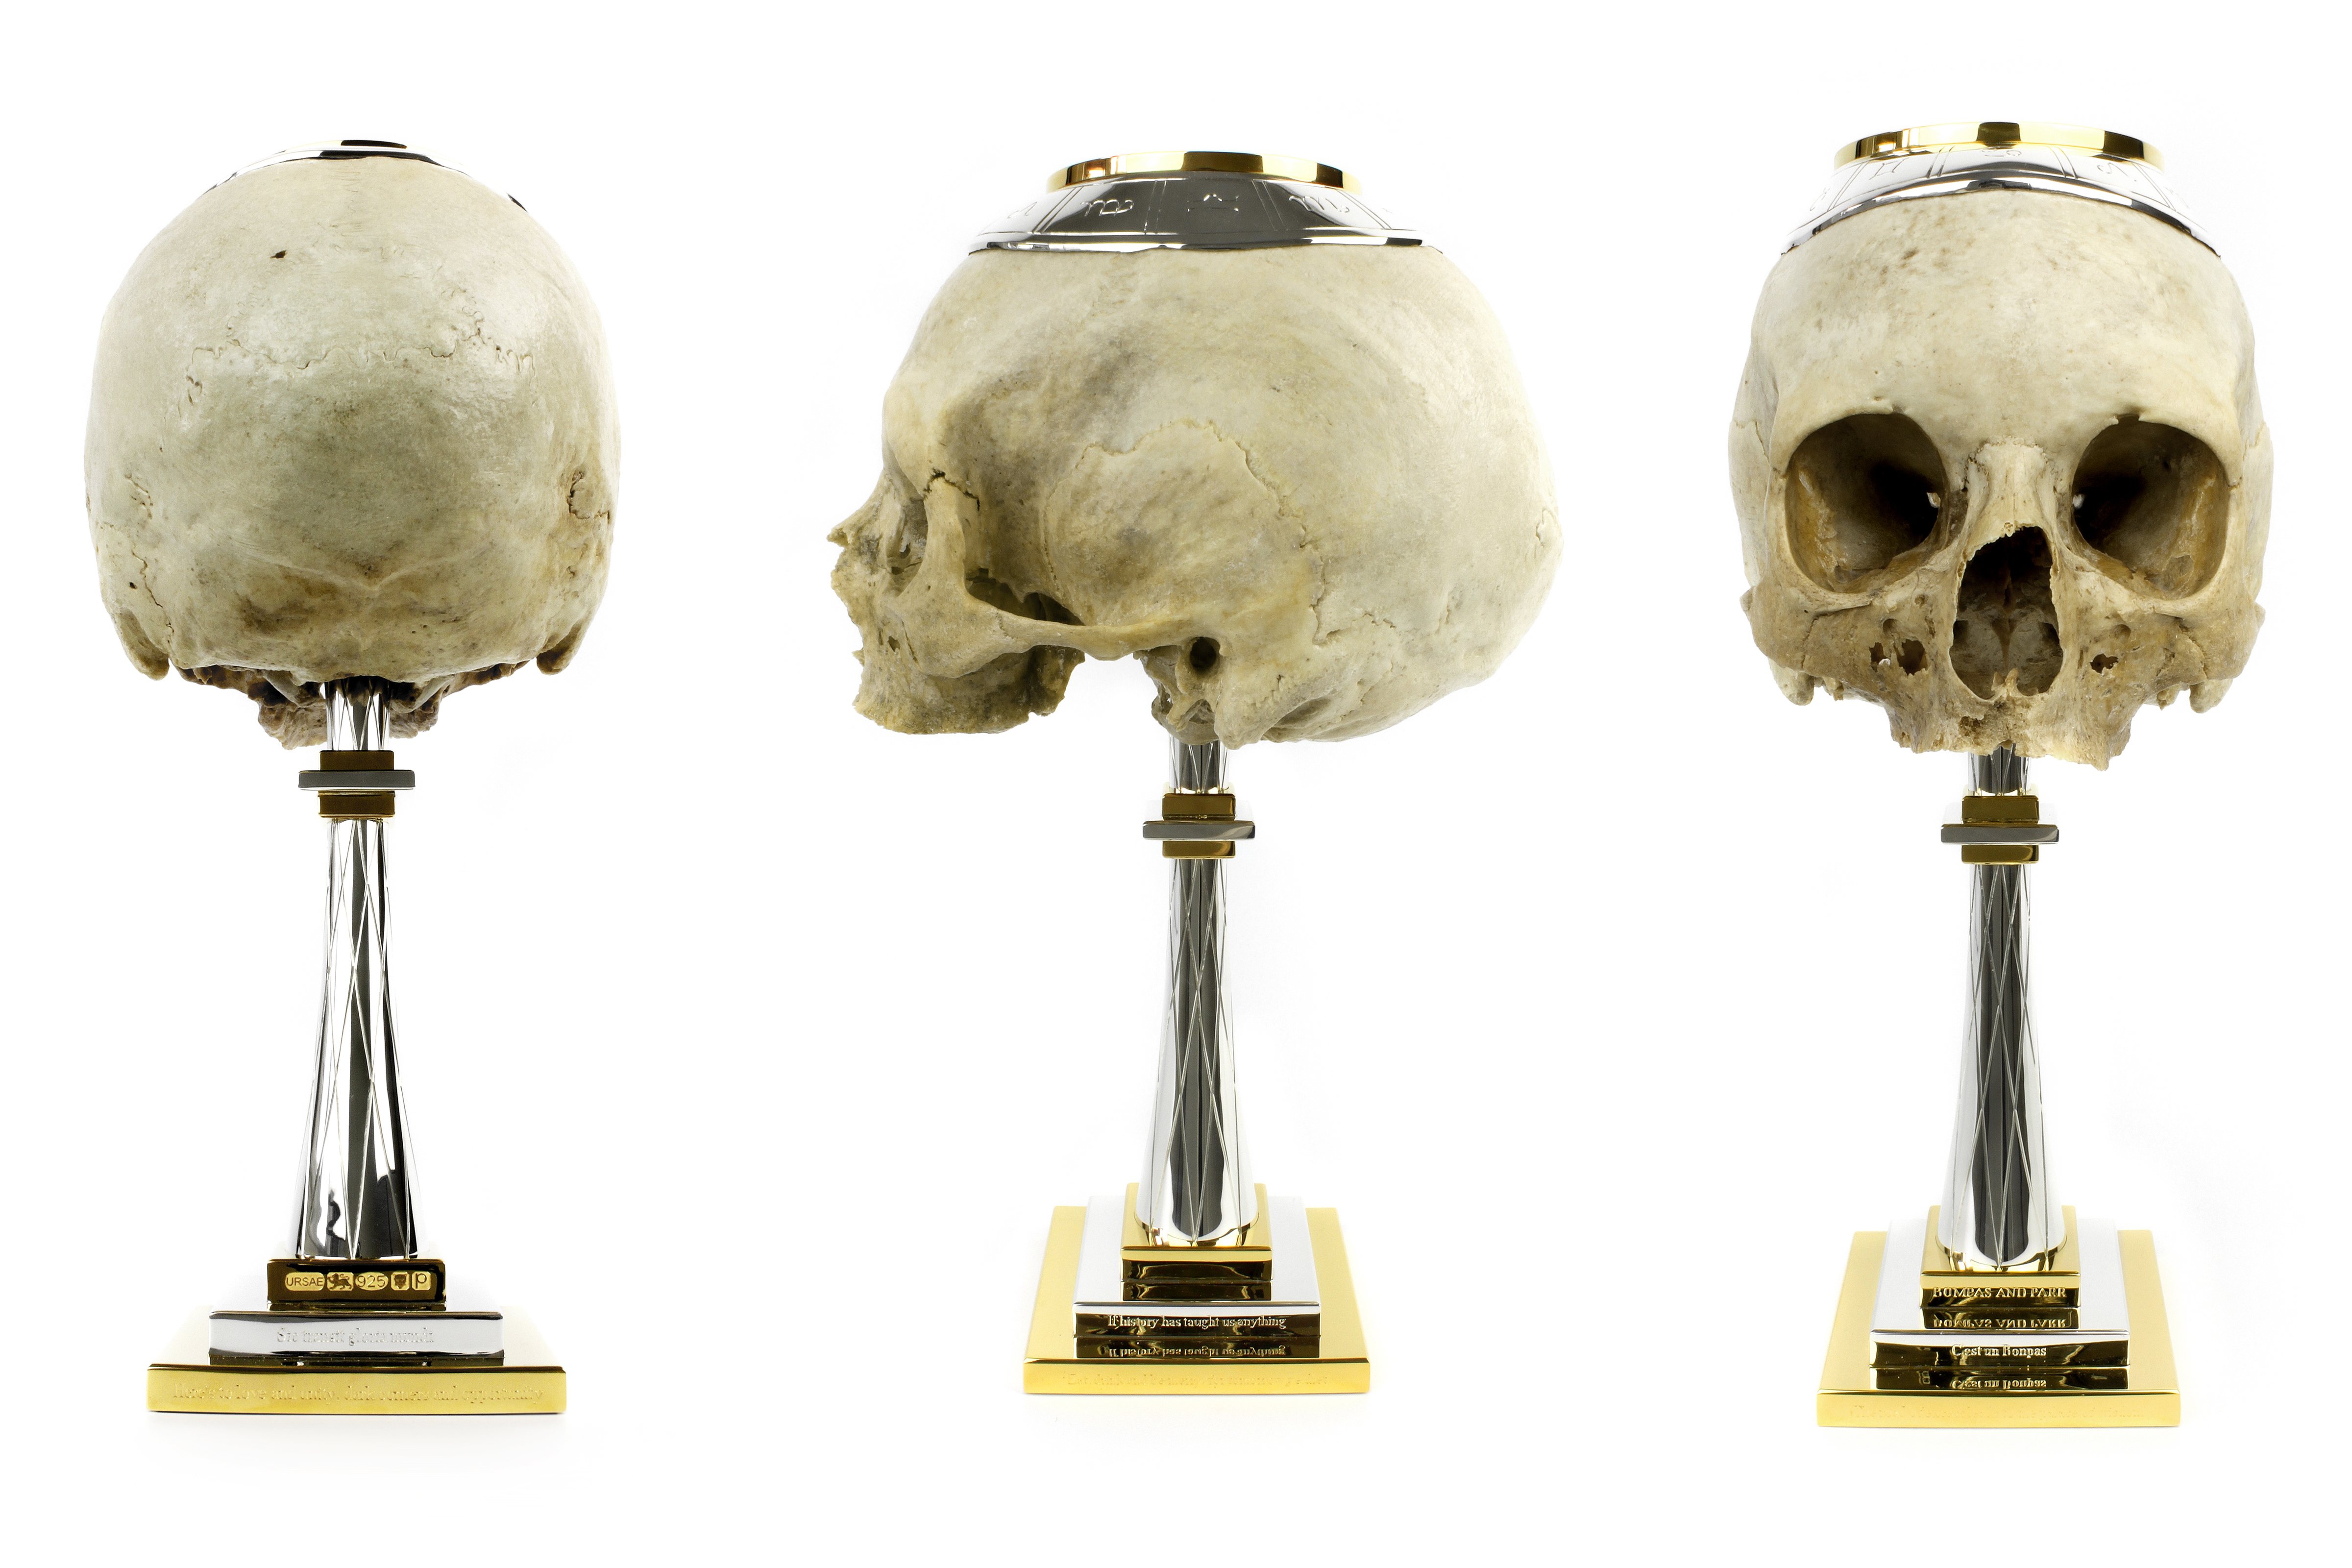 Skull Goblet Views – Copyright BJRdesigns